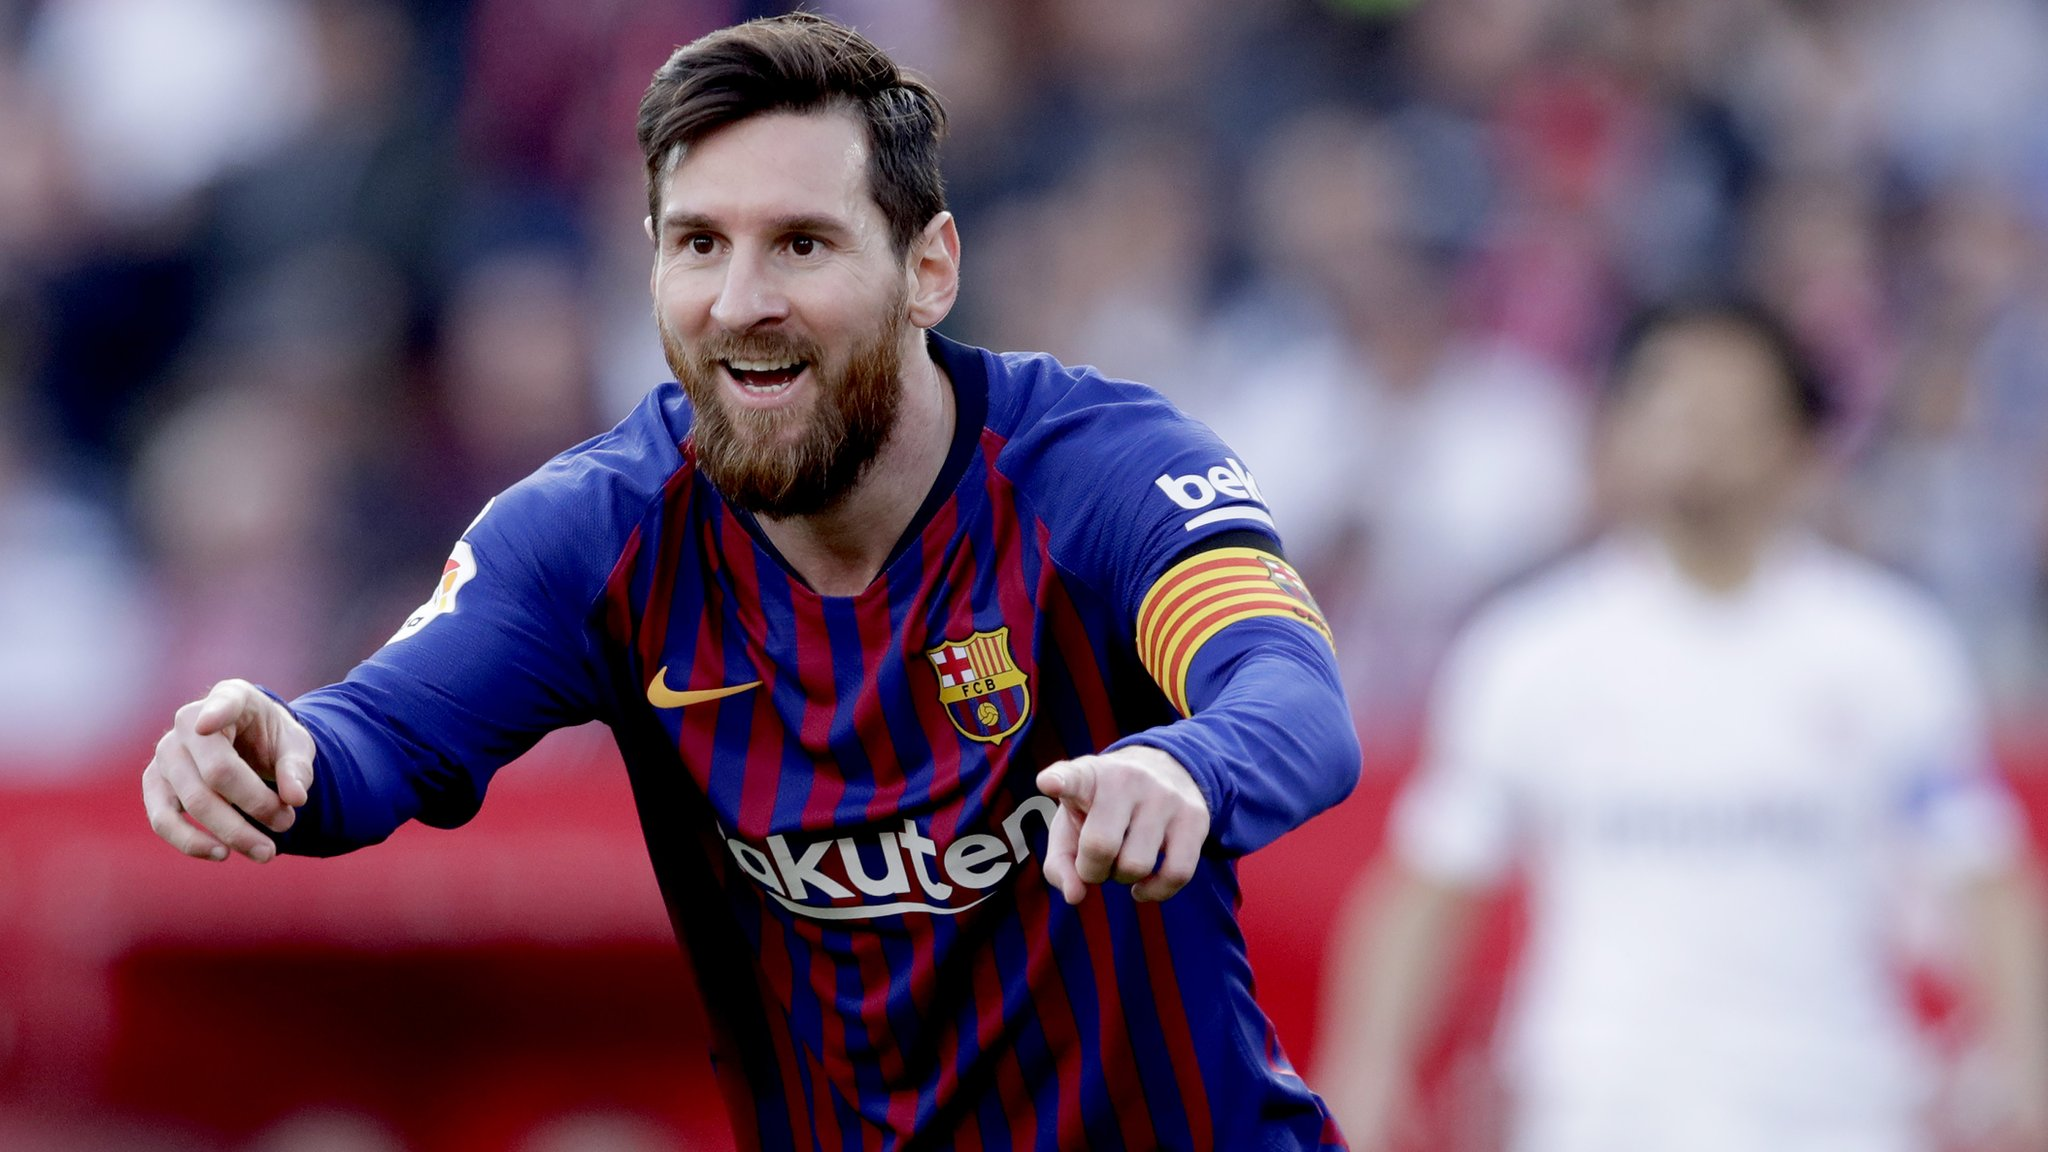 Sevilla 2-4 Barcelona: Lionel Messi scores 50th hat-trick in win